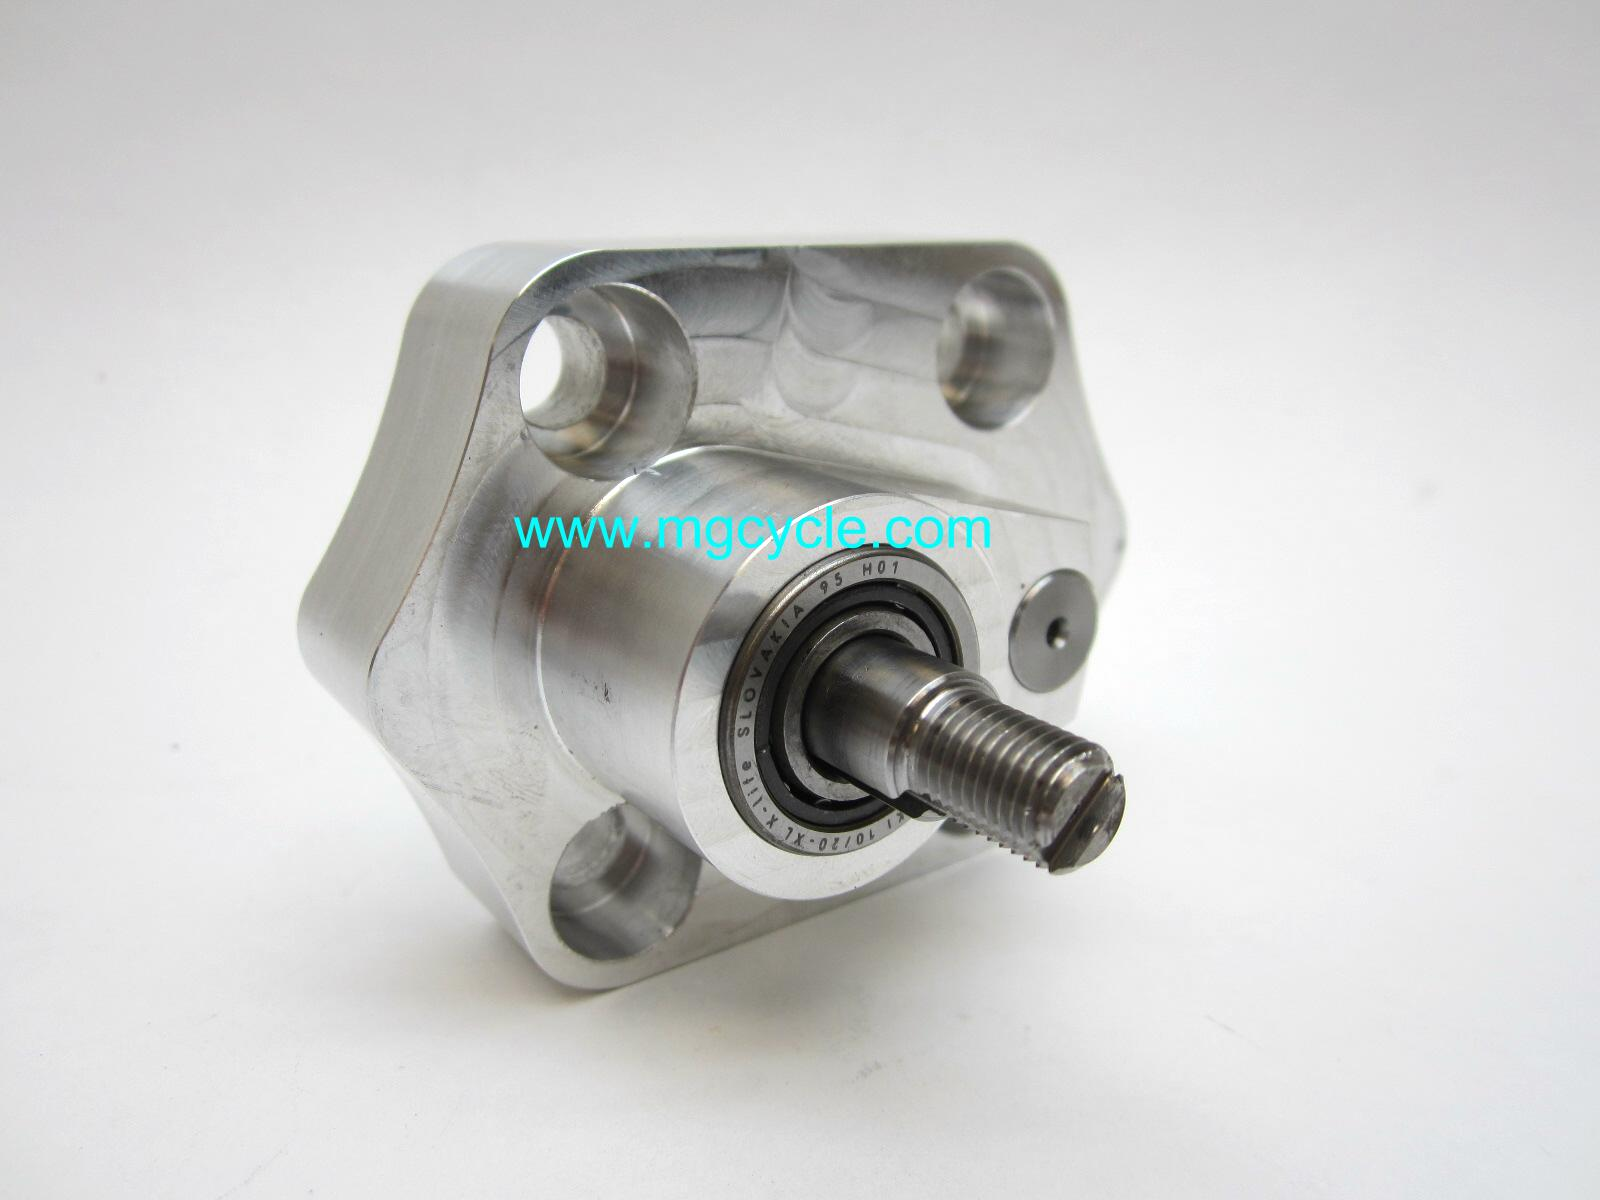 Improved oil pump for two valve big twins with oil filters